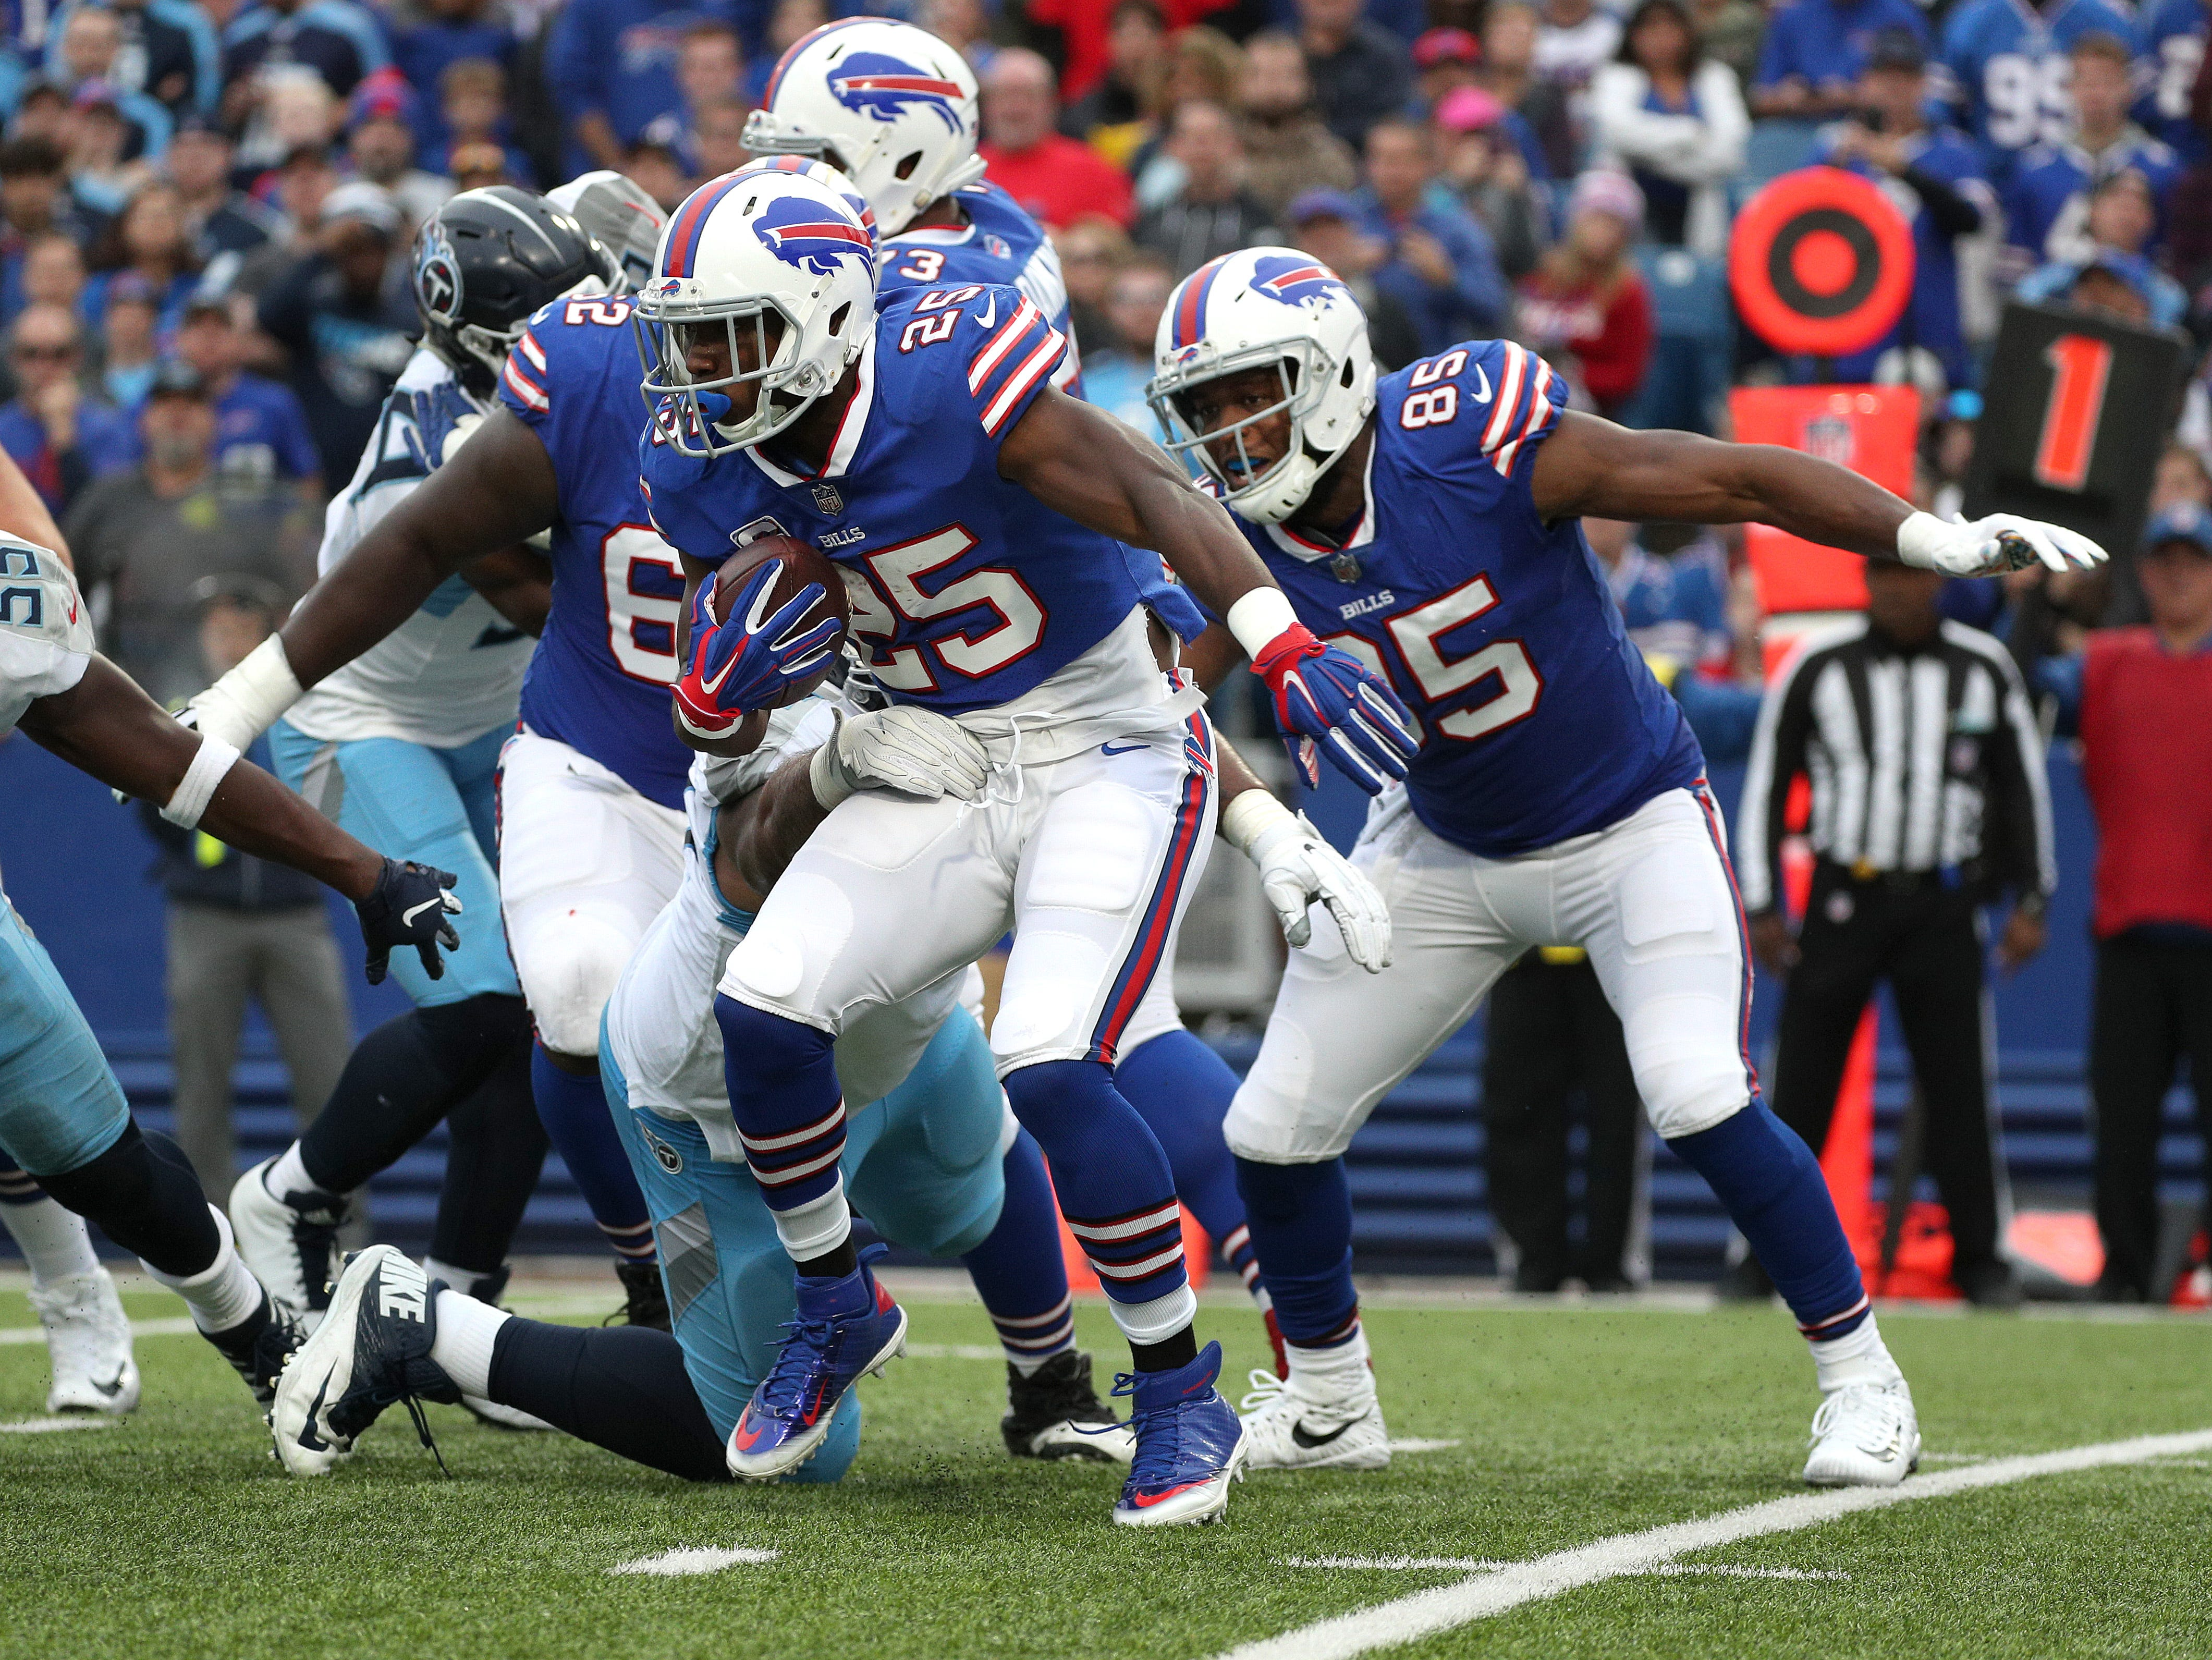 Bills running back LeSen McCoy looks for a hole along the line of scrimmage.